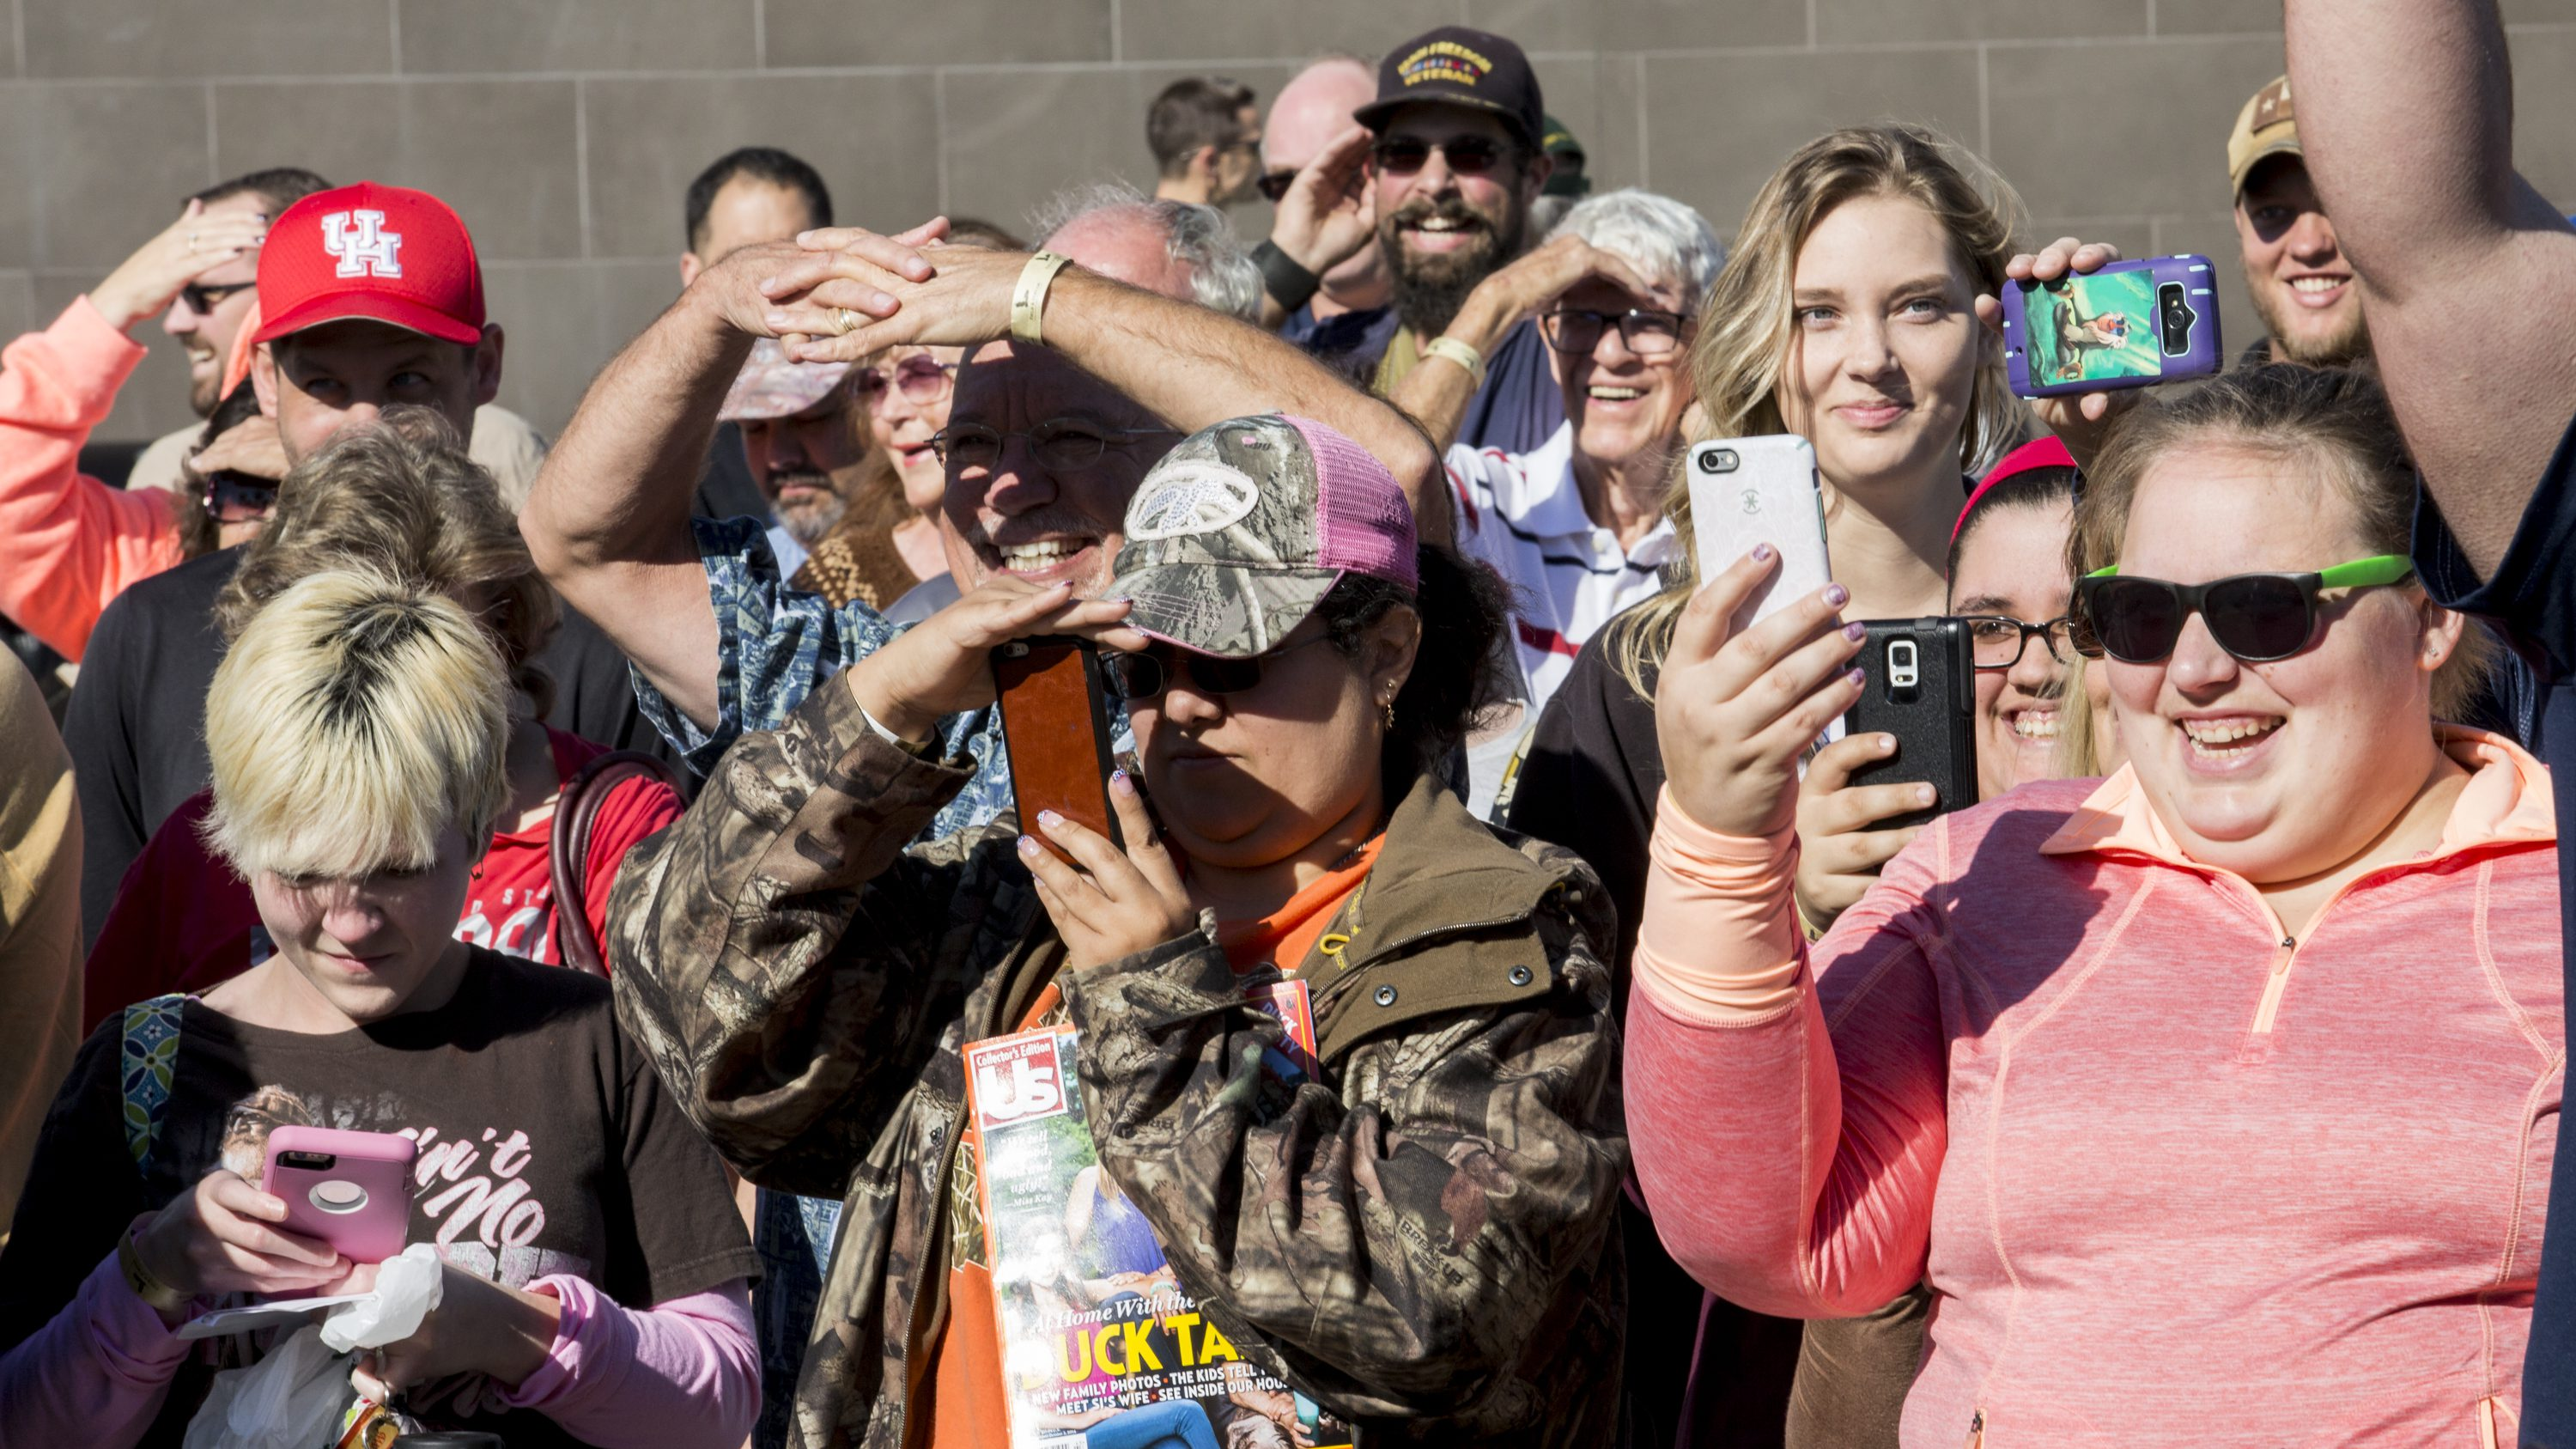 IMAGE DISTRIBUTED FOR DICK'S SPORTING GOODS - Fans take photos of Phil Robertson, reality television star from the Duck Dynasty series, during a recent store appearance at the new DICK'S Sporting Goods Grand Opening Celebration at the Baybrook Mall in Friendswood, TX on Friday, October 21, 2016.  (Photo by Scott Dalton/Invision for DICK'S Sporting Goods/AP Images)